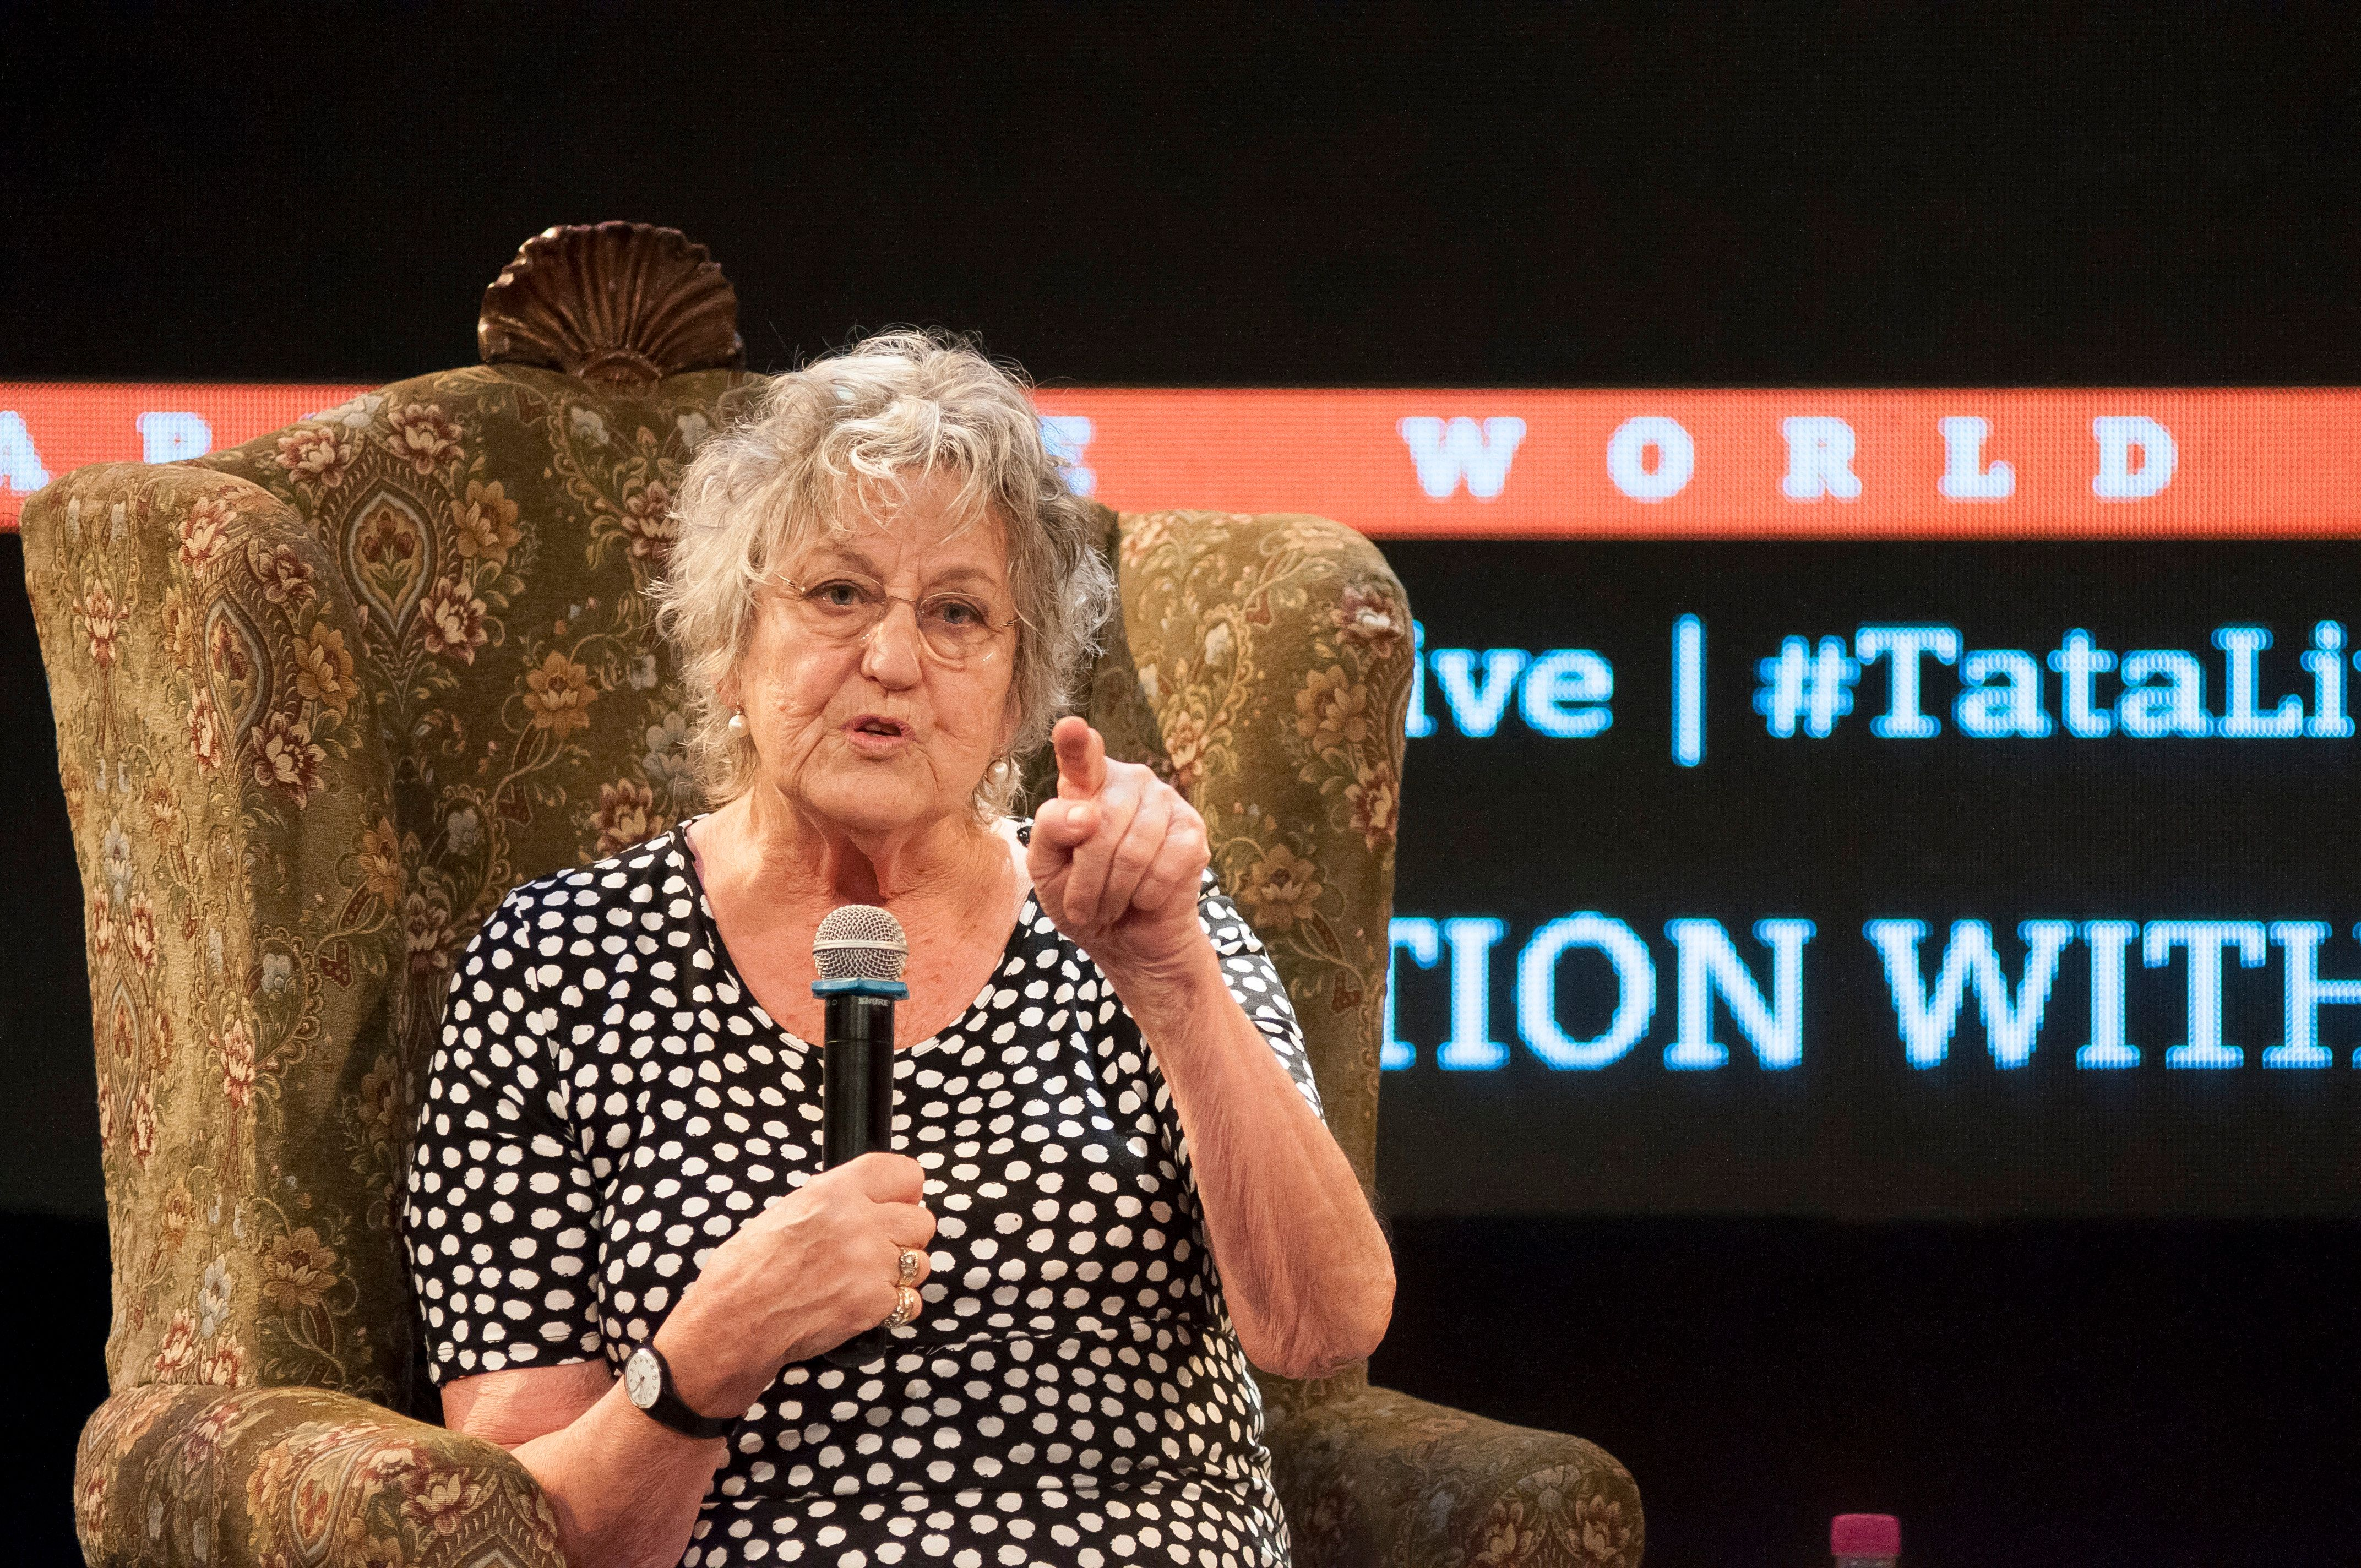 Germaine Greer speaks at the Tata Literature Live Festival on Oct. 29, 2015, in Mumbai, India.